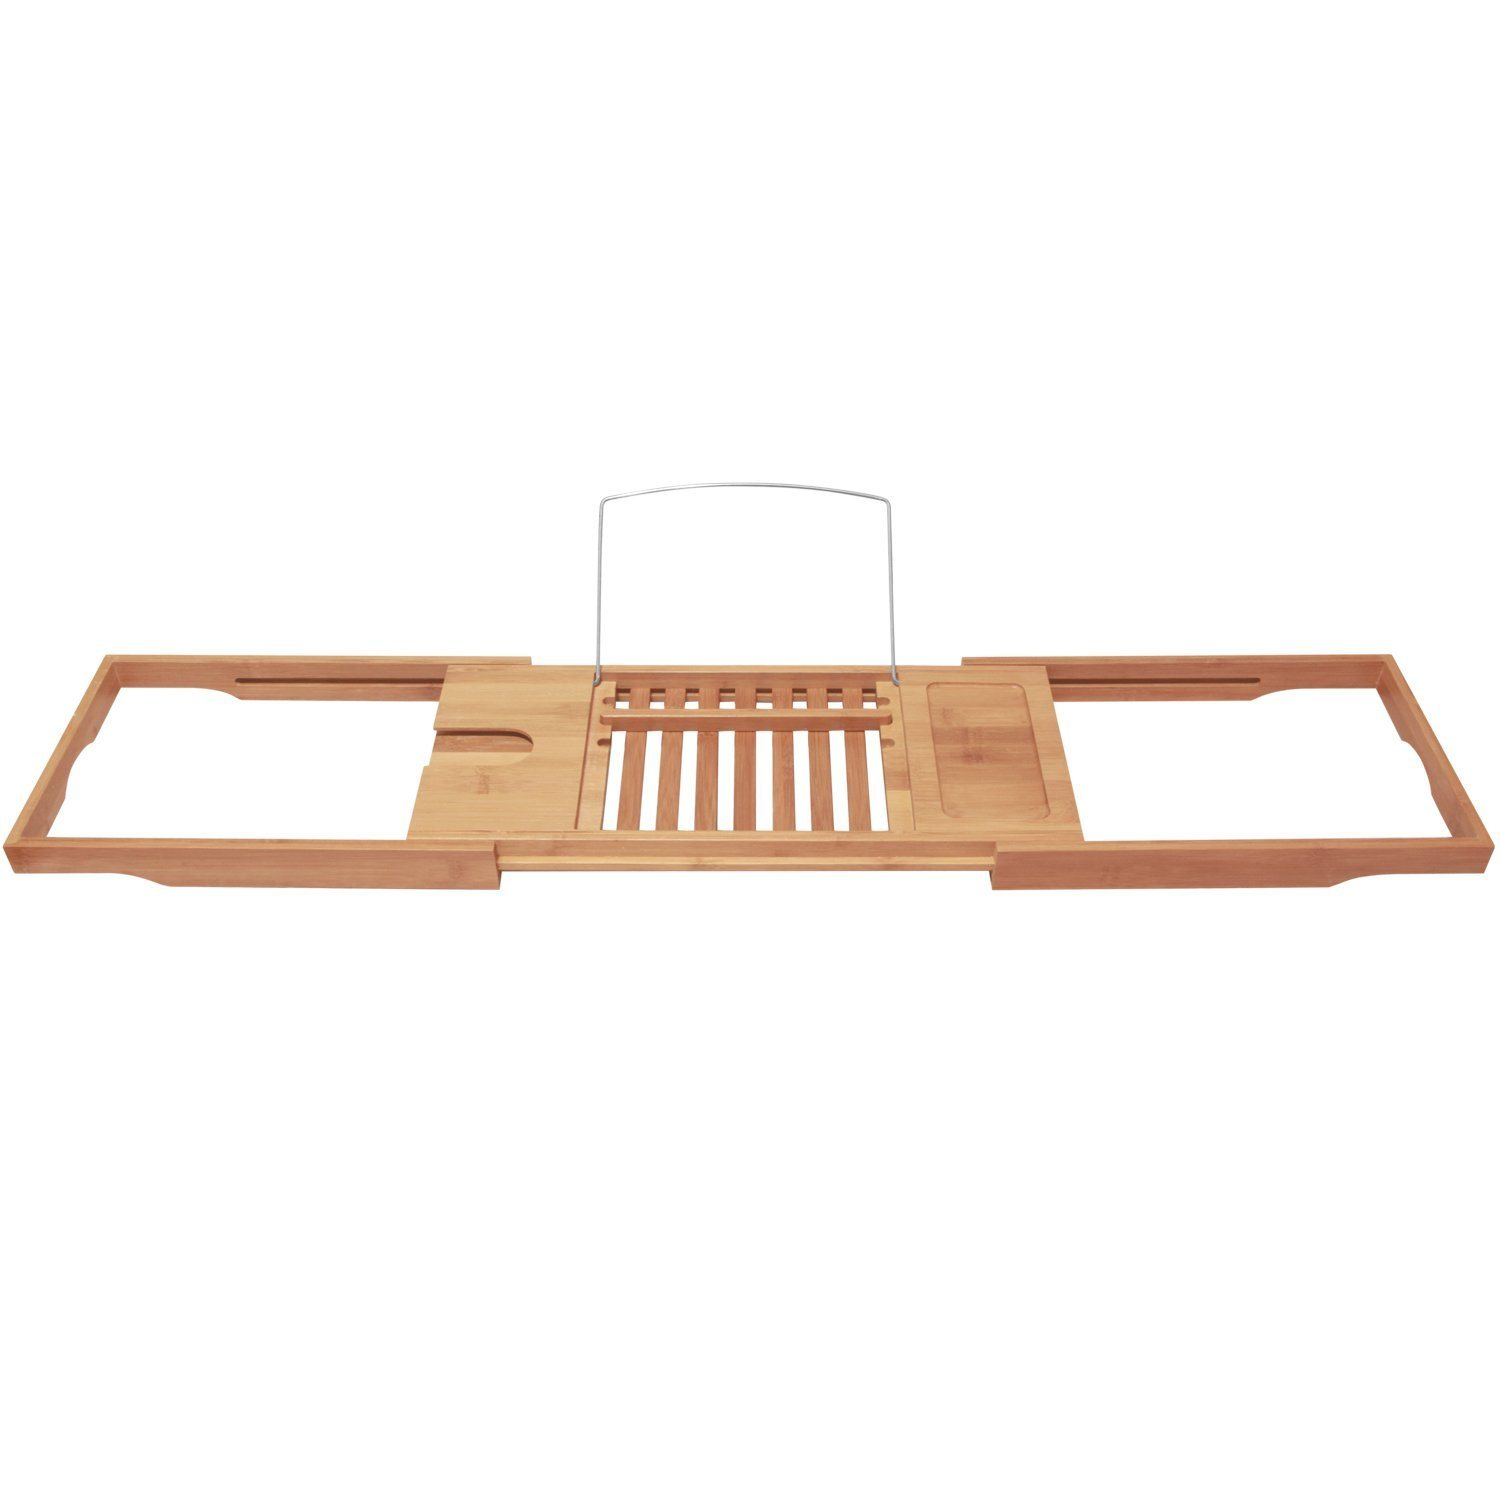 China Waterproof Expandable Bamboo Bathtub Caddy (Natural, Eco ...